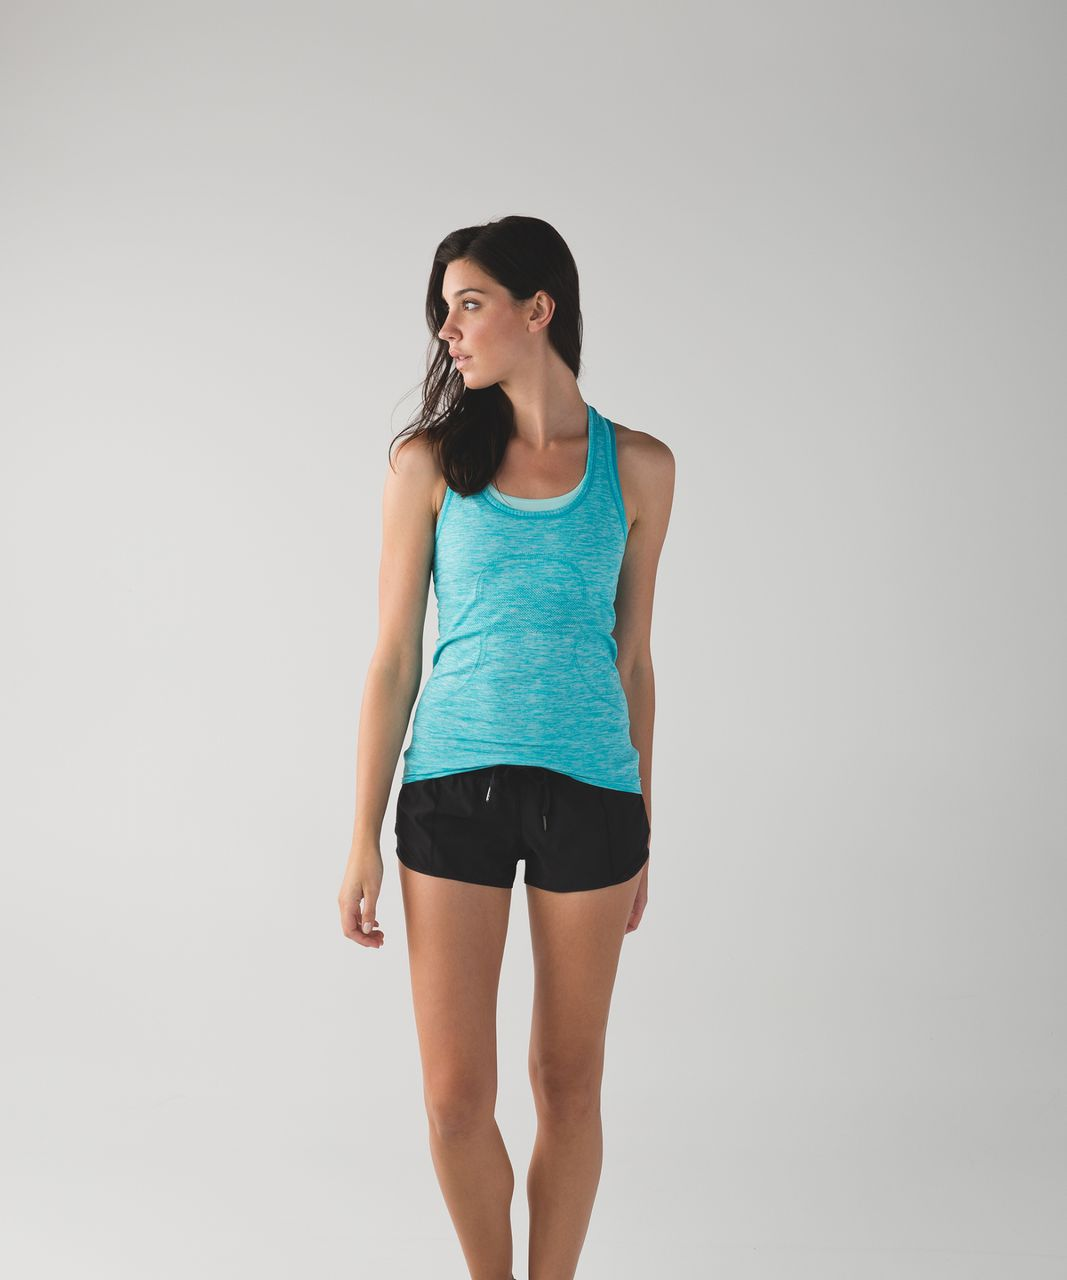 Lululemon Swiftly Tech Racerback - Heathered Peacock Blue